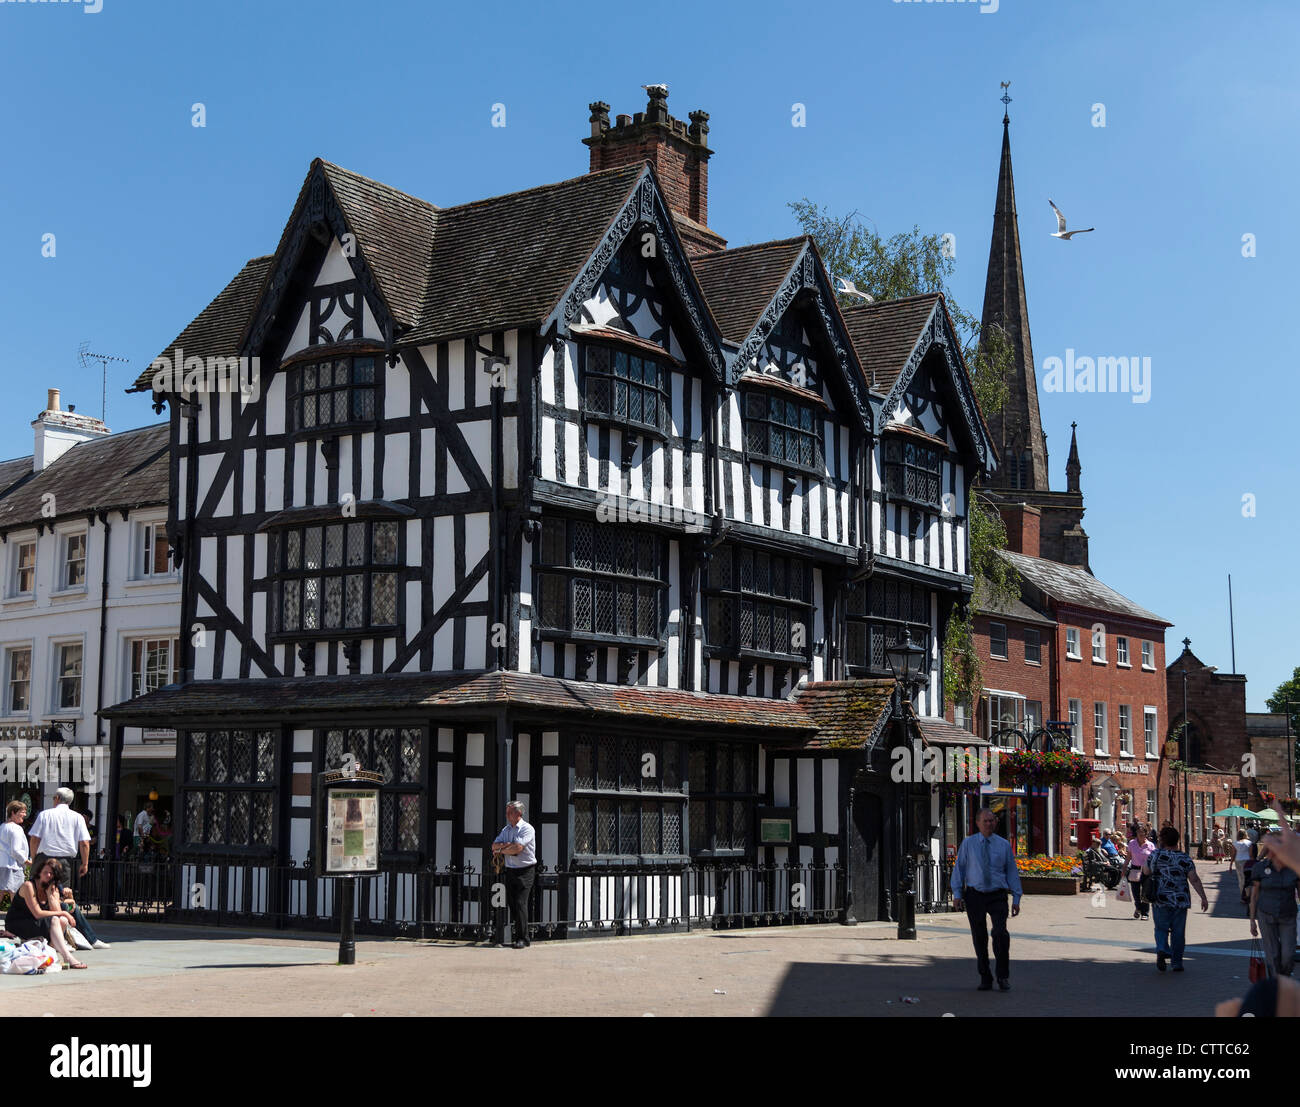 half timbered black white house on main thoroughfare in city of stock photo royalty free. Black Bedroom Furniture Sets. Home Design Ideas